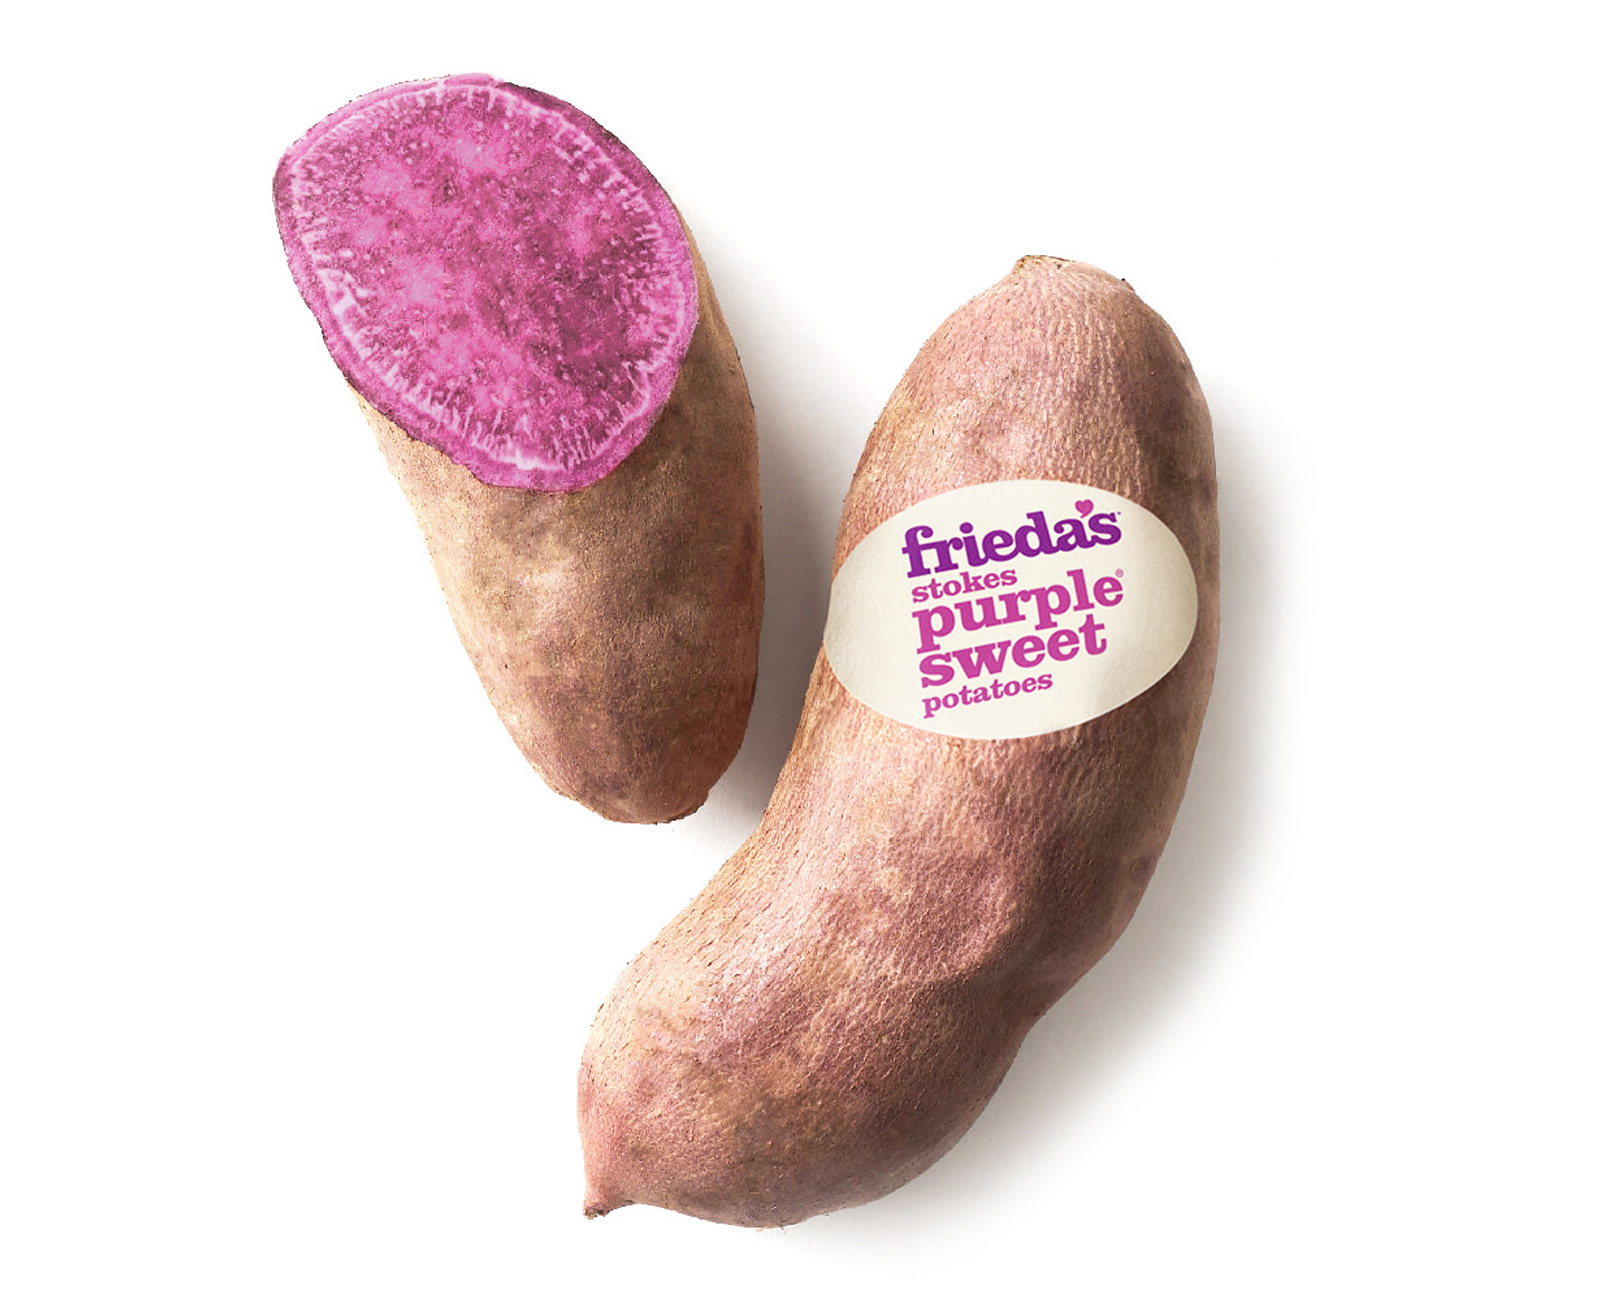 Stokes Purple® Sweet Potato Menu Image